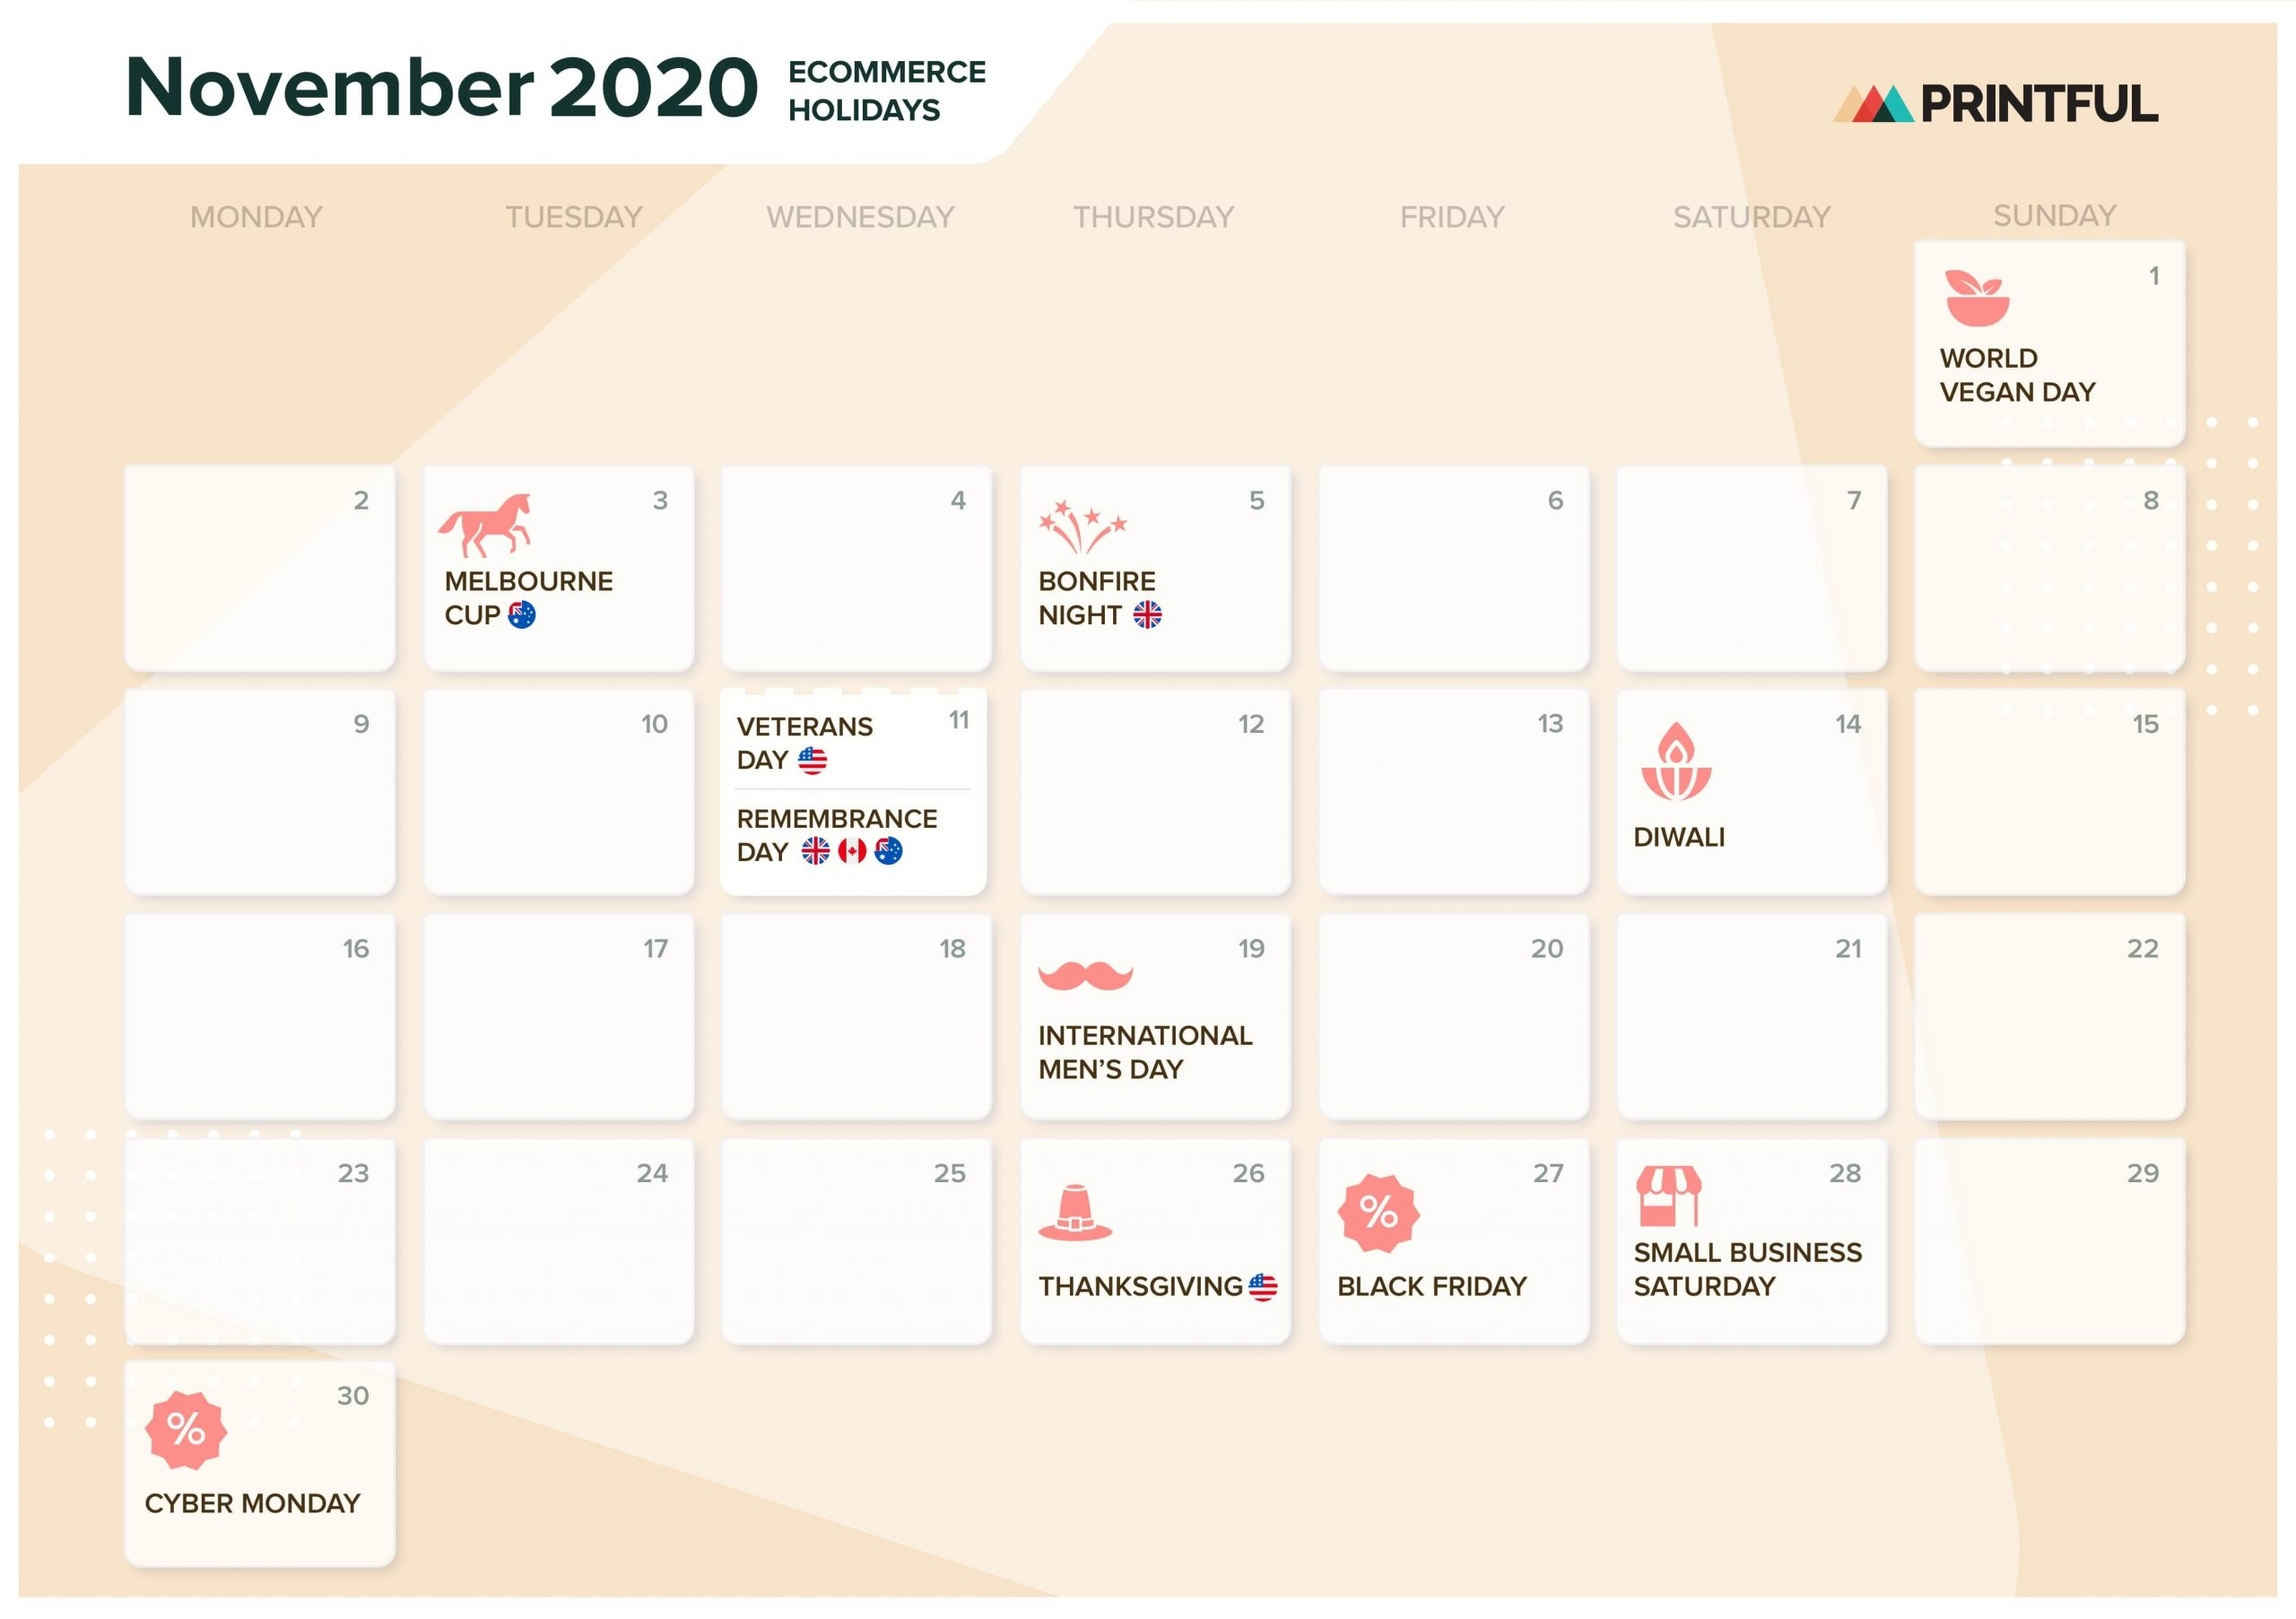 The Ultimate 2020 Ecommerce Holiday Marketing Calendar with Liturgical Planning 2020 Calendar Download